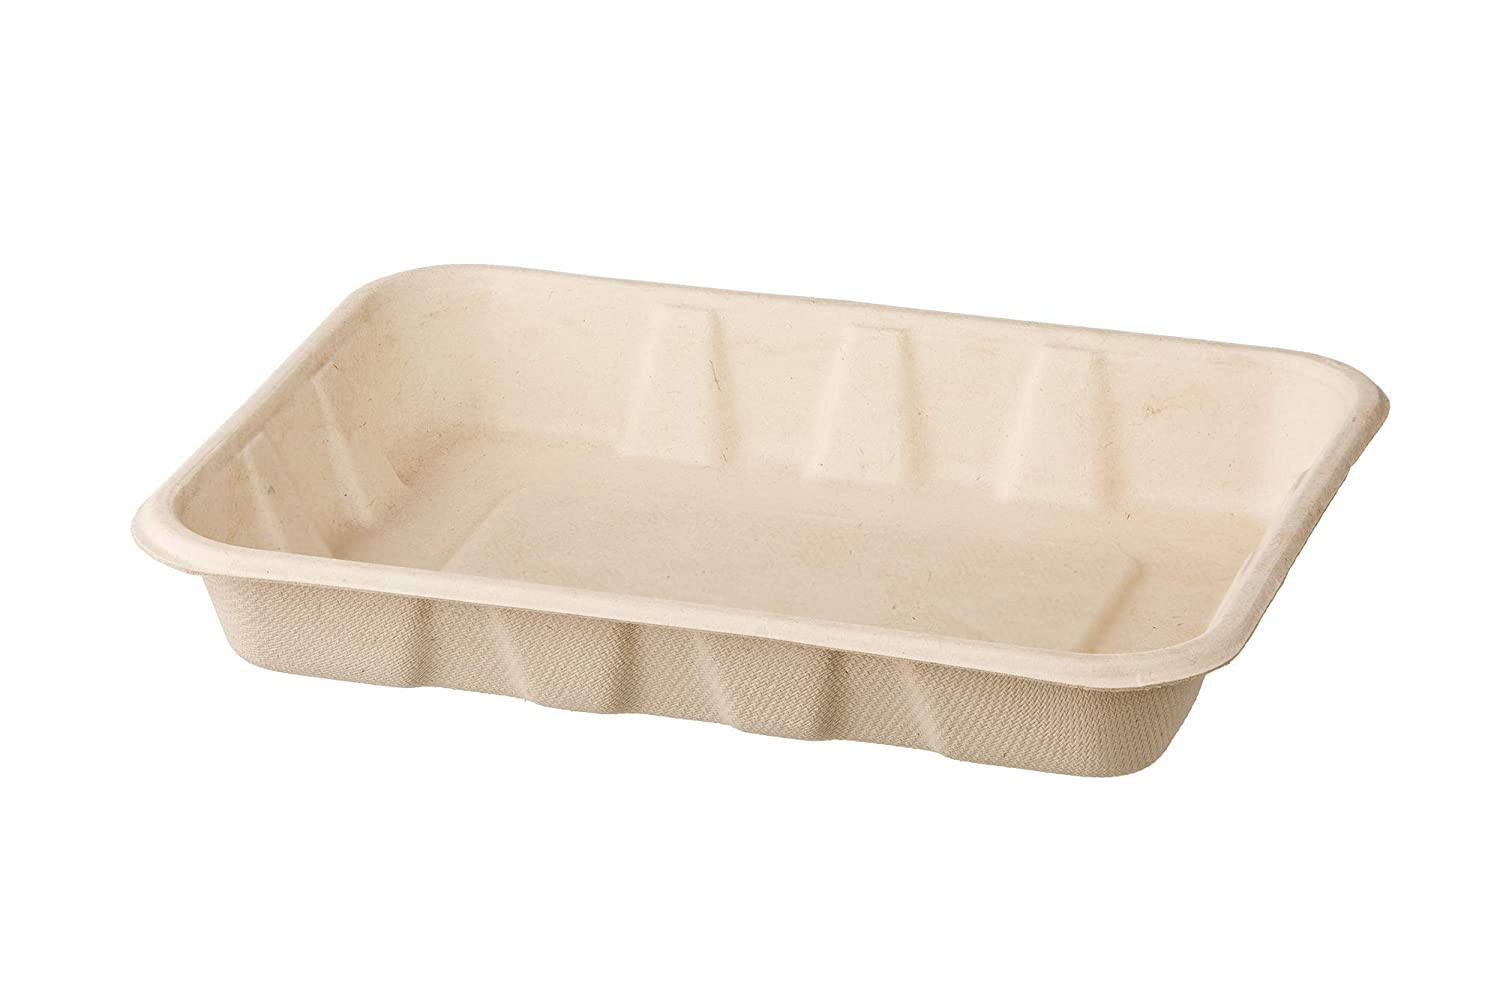 HARVEST PACK 22 oz Compostable Disposable Food Container Serving Trays, Rectangle, Made from 100% Eco-Friendly Plant Fibers [100 COUNT]